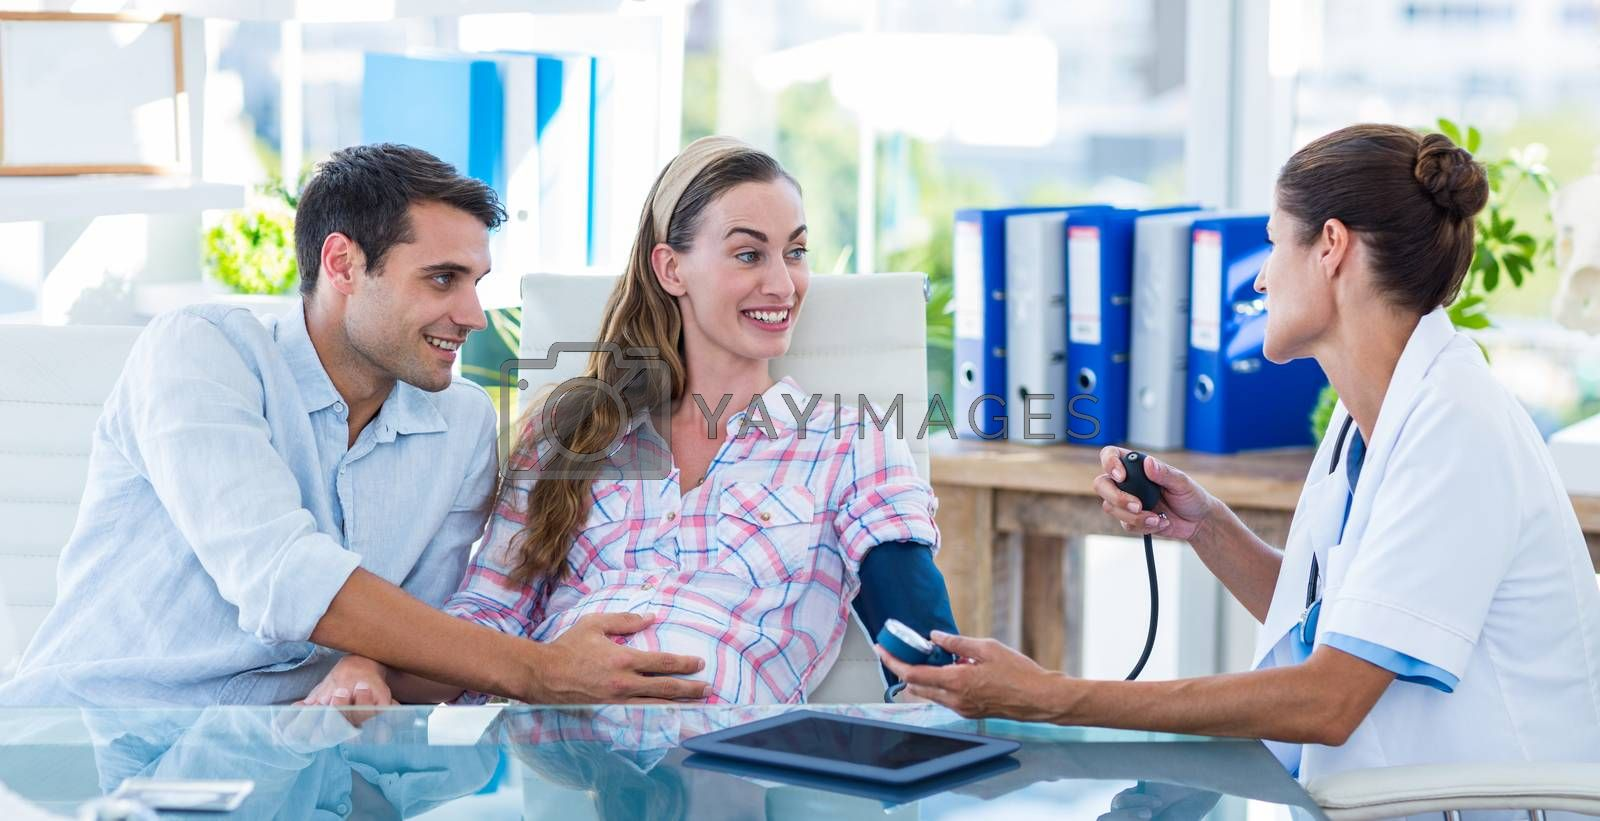 Royalty free image of Doctor taking the blood pressure of a pregnant patient with her husband by Wavebreakmedia